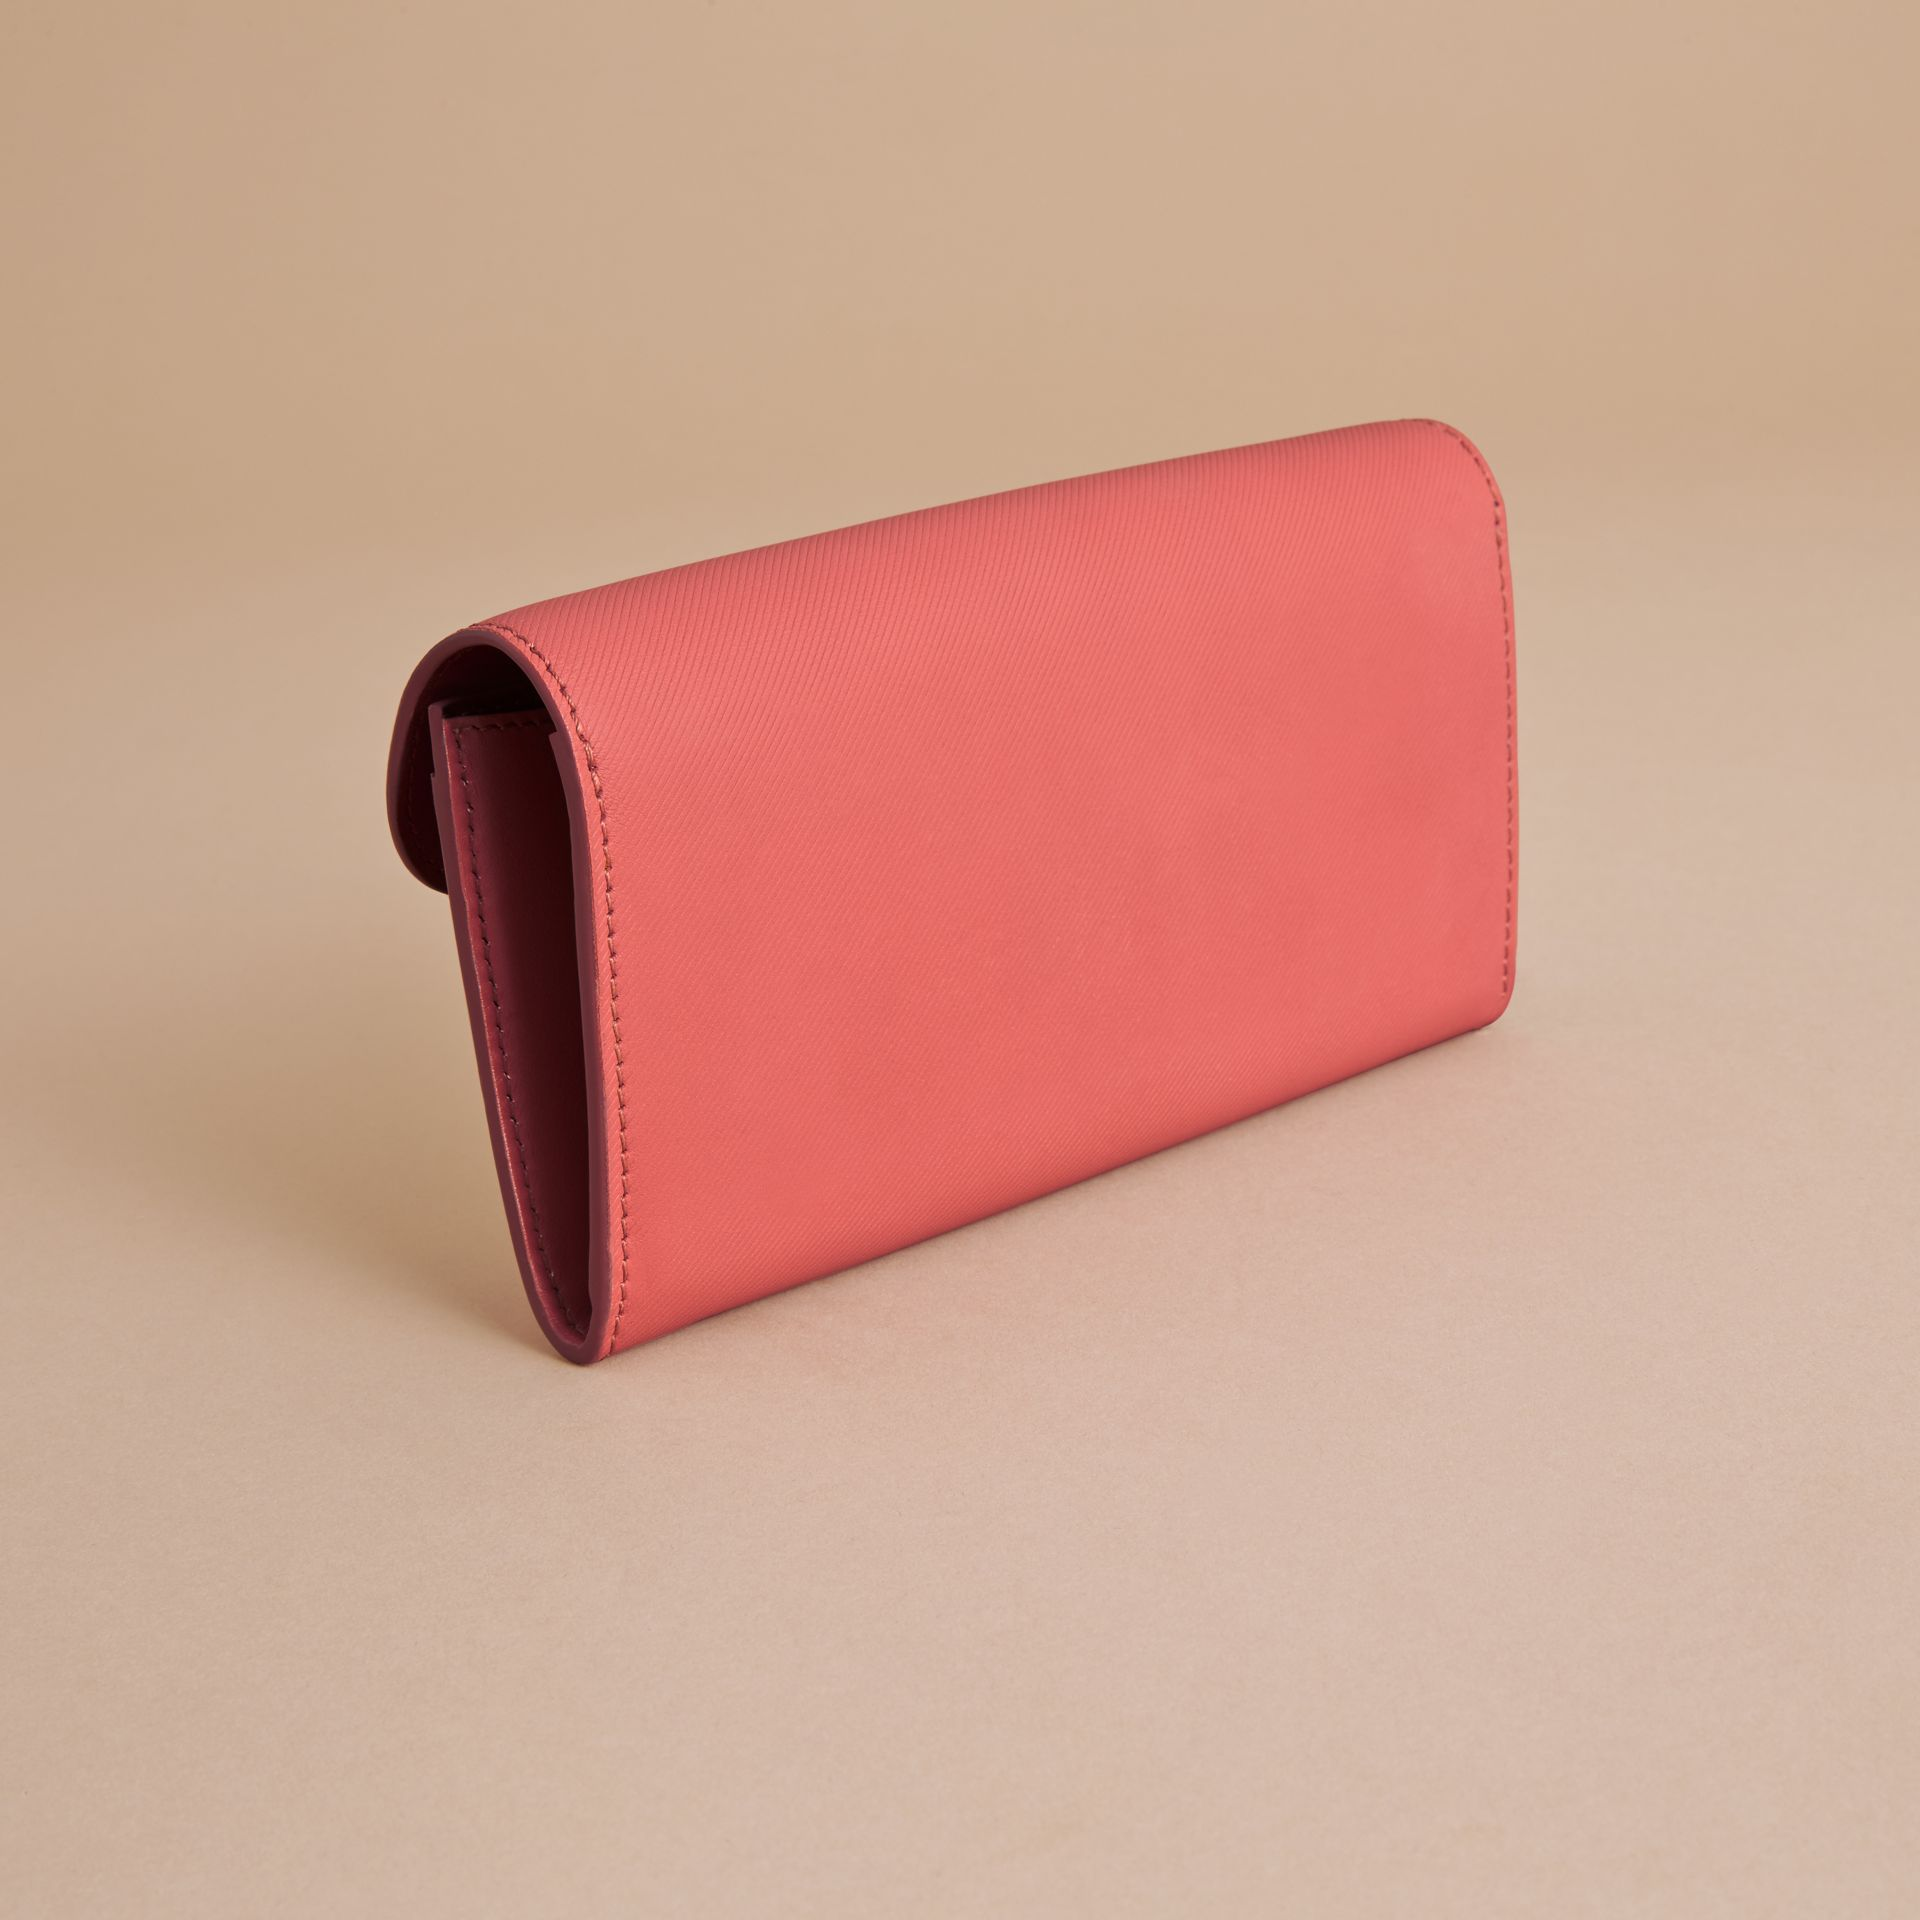 Two-tone Trench Leather Continental Wallet in Blossom Pink/antique Red - Women | Burberry Hong Kong - gallery image 3